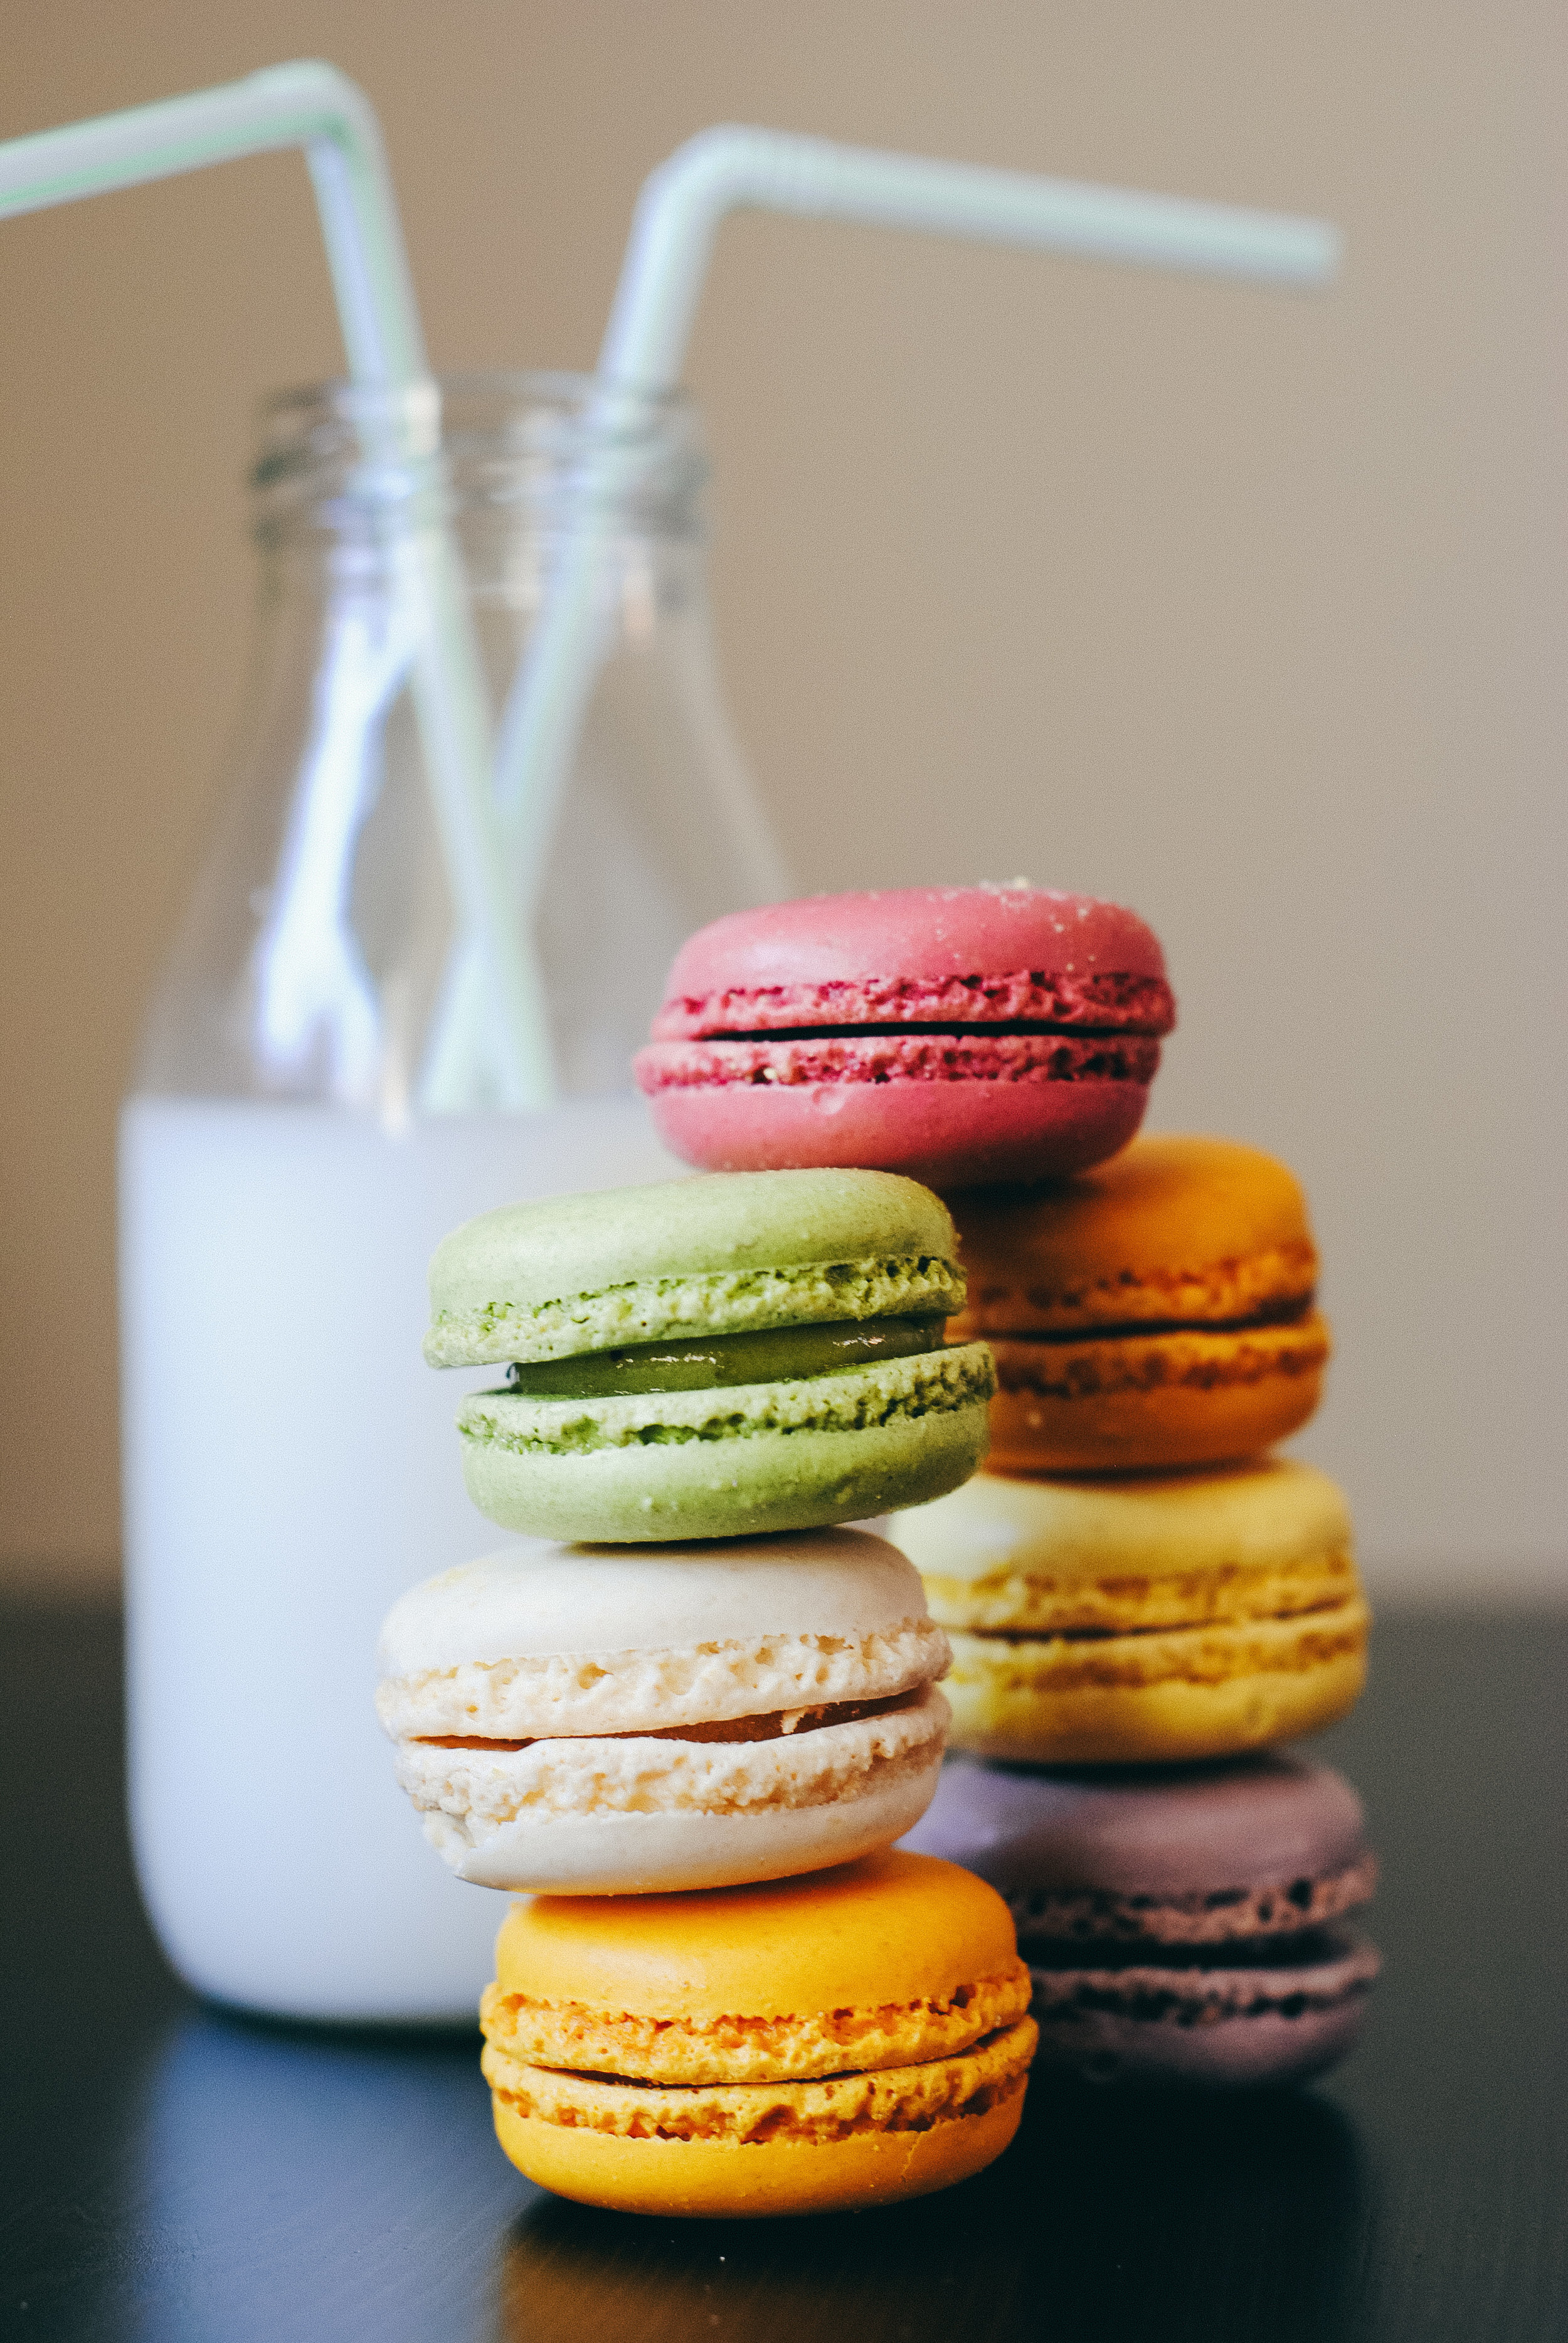 Naturally Sourced Food Dyes   Frequently asked questions ...